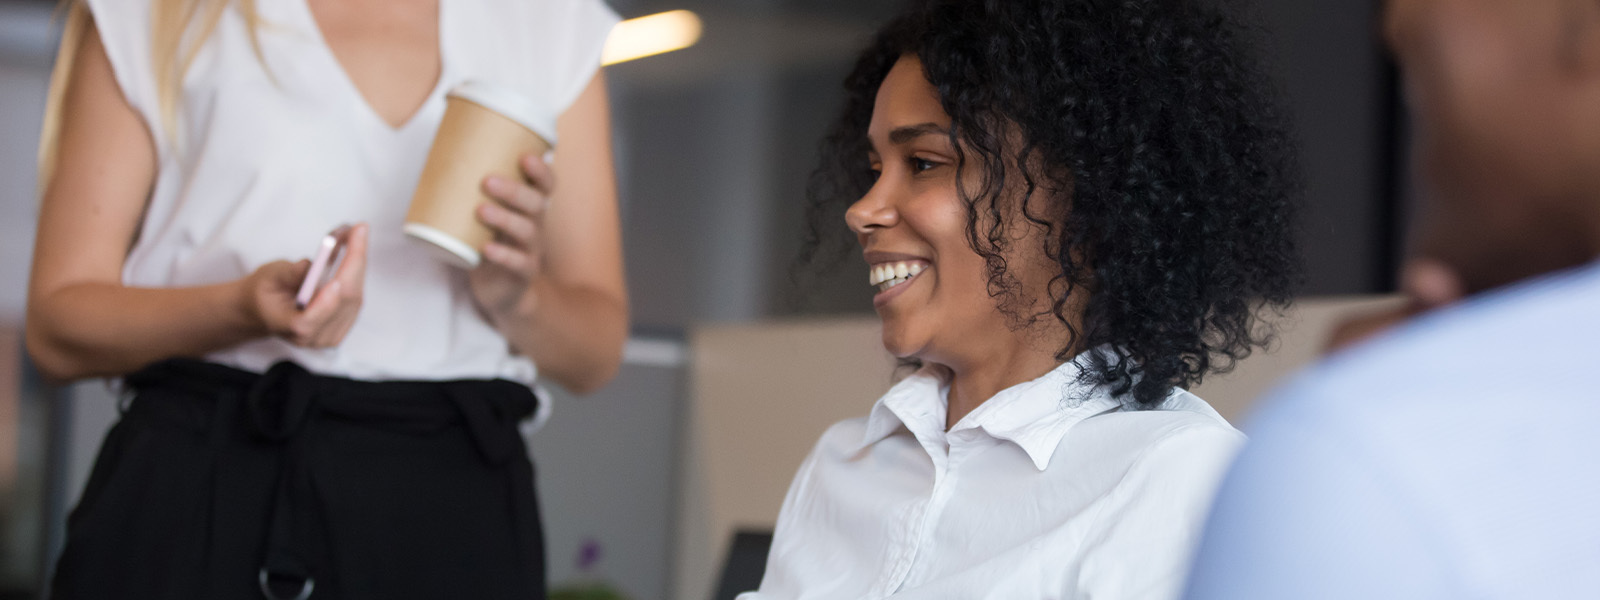 Image Of Woman In Office Setting Talking With Coworkers